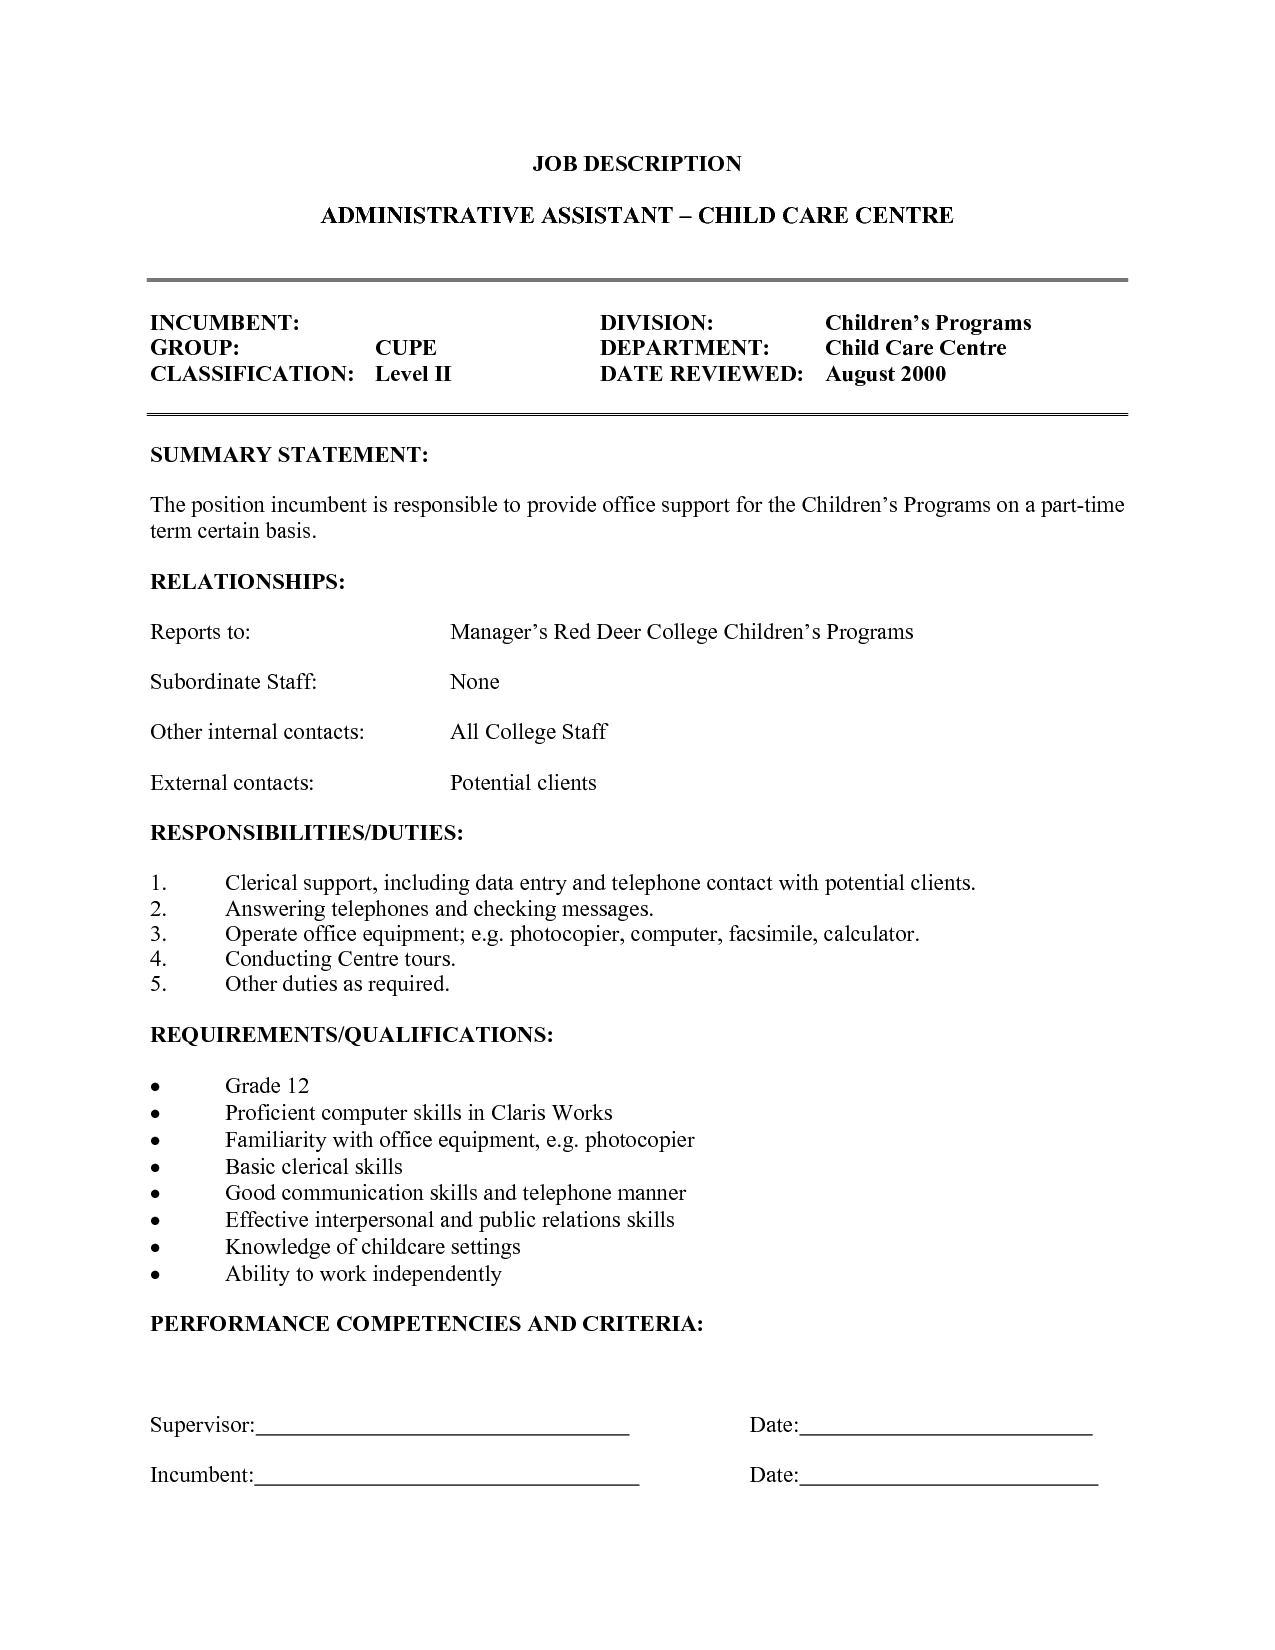 child care provider resume template design robinson